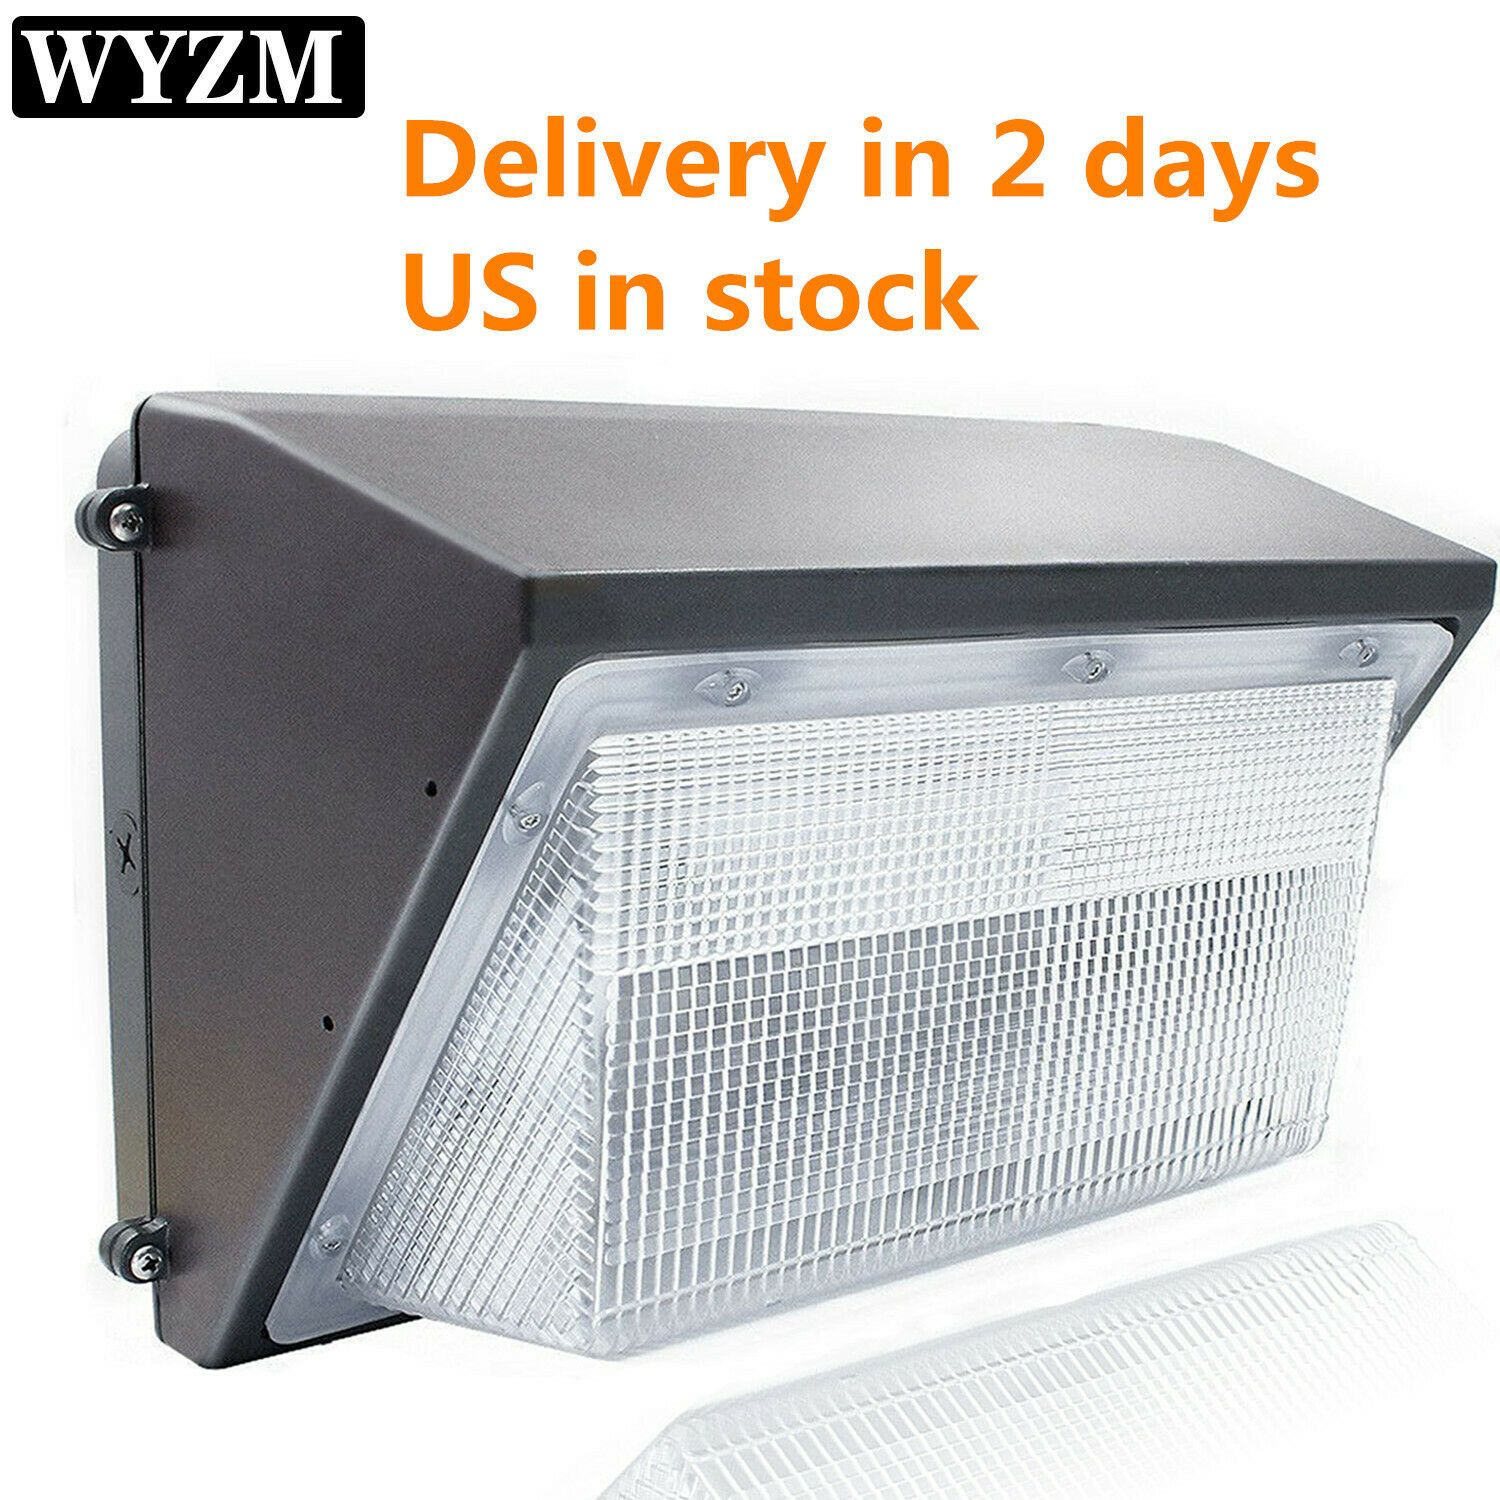 Led Dusk To Dawn 70w 100w 125w Wall Pack Security Lighting 250 600w Equivalent 76 99 Outdoor Lighting Ideas Of Security Lights Dusk To Dawn Wall Packs